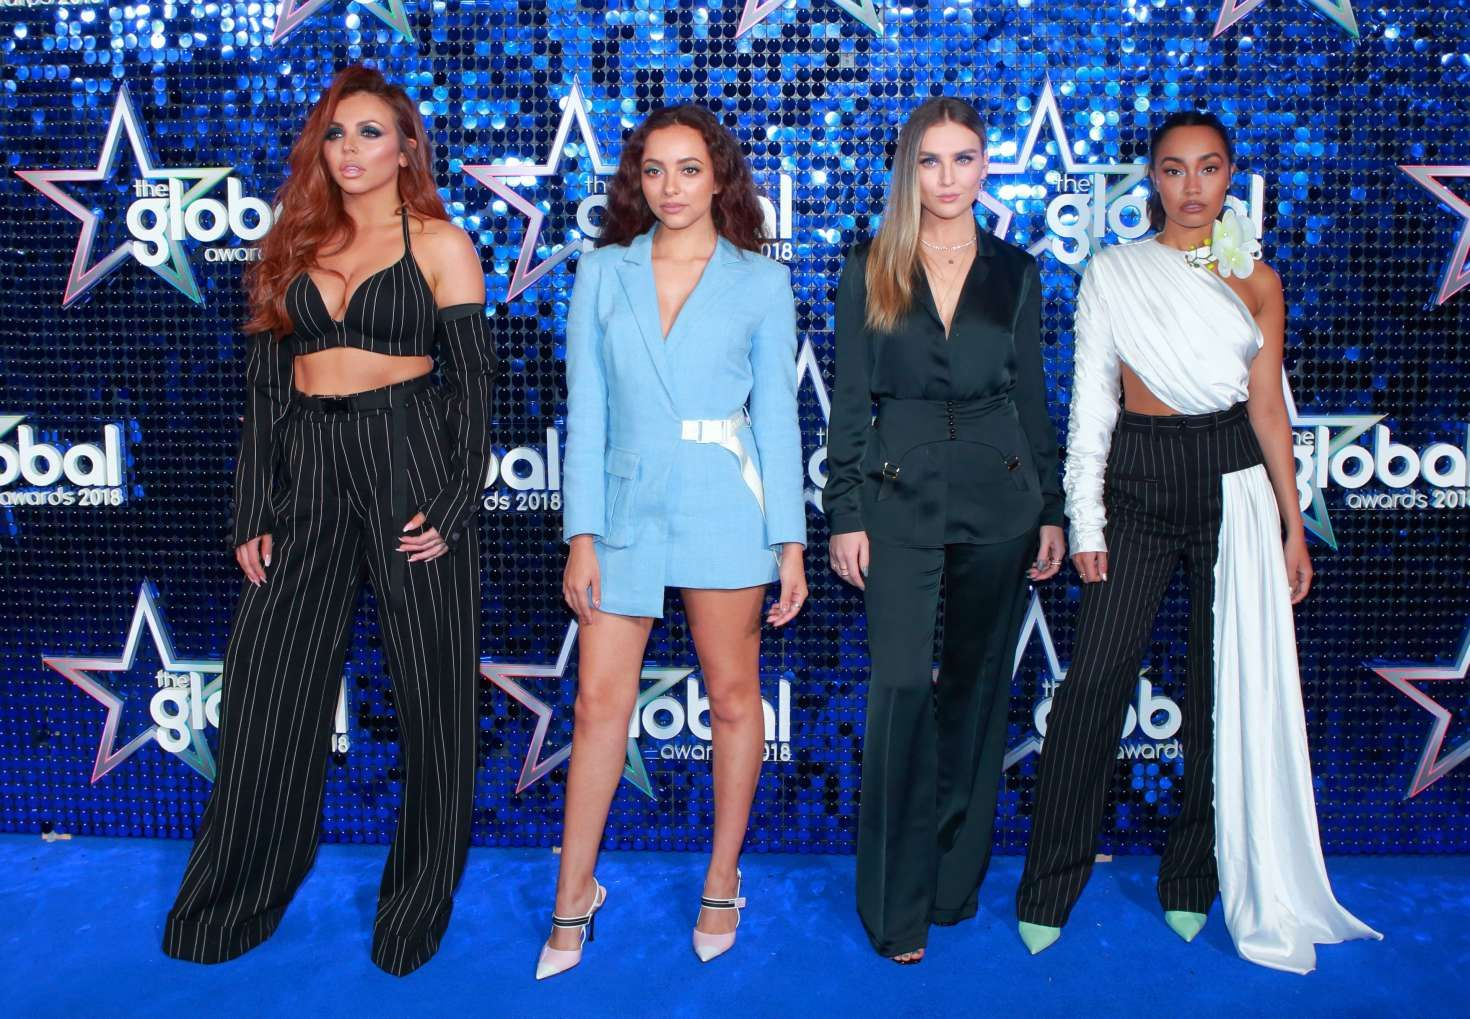 The Global Awards 2018 ️👸🏽 ️👸🏽 ️👸🏼 ️👸🏾 | Little mix ...